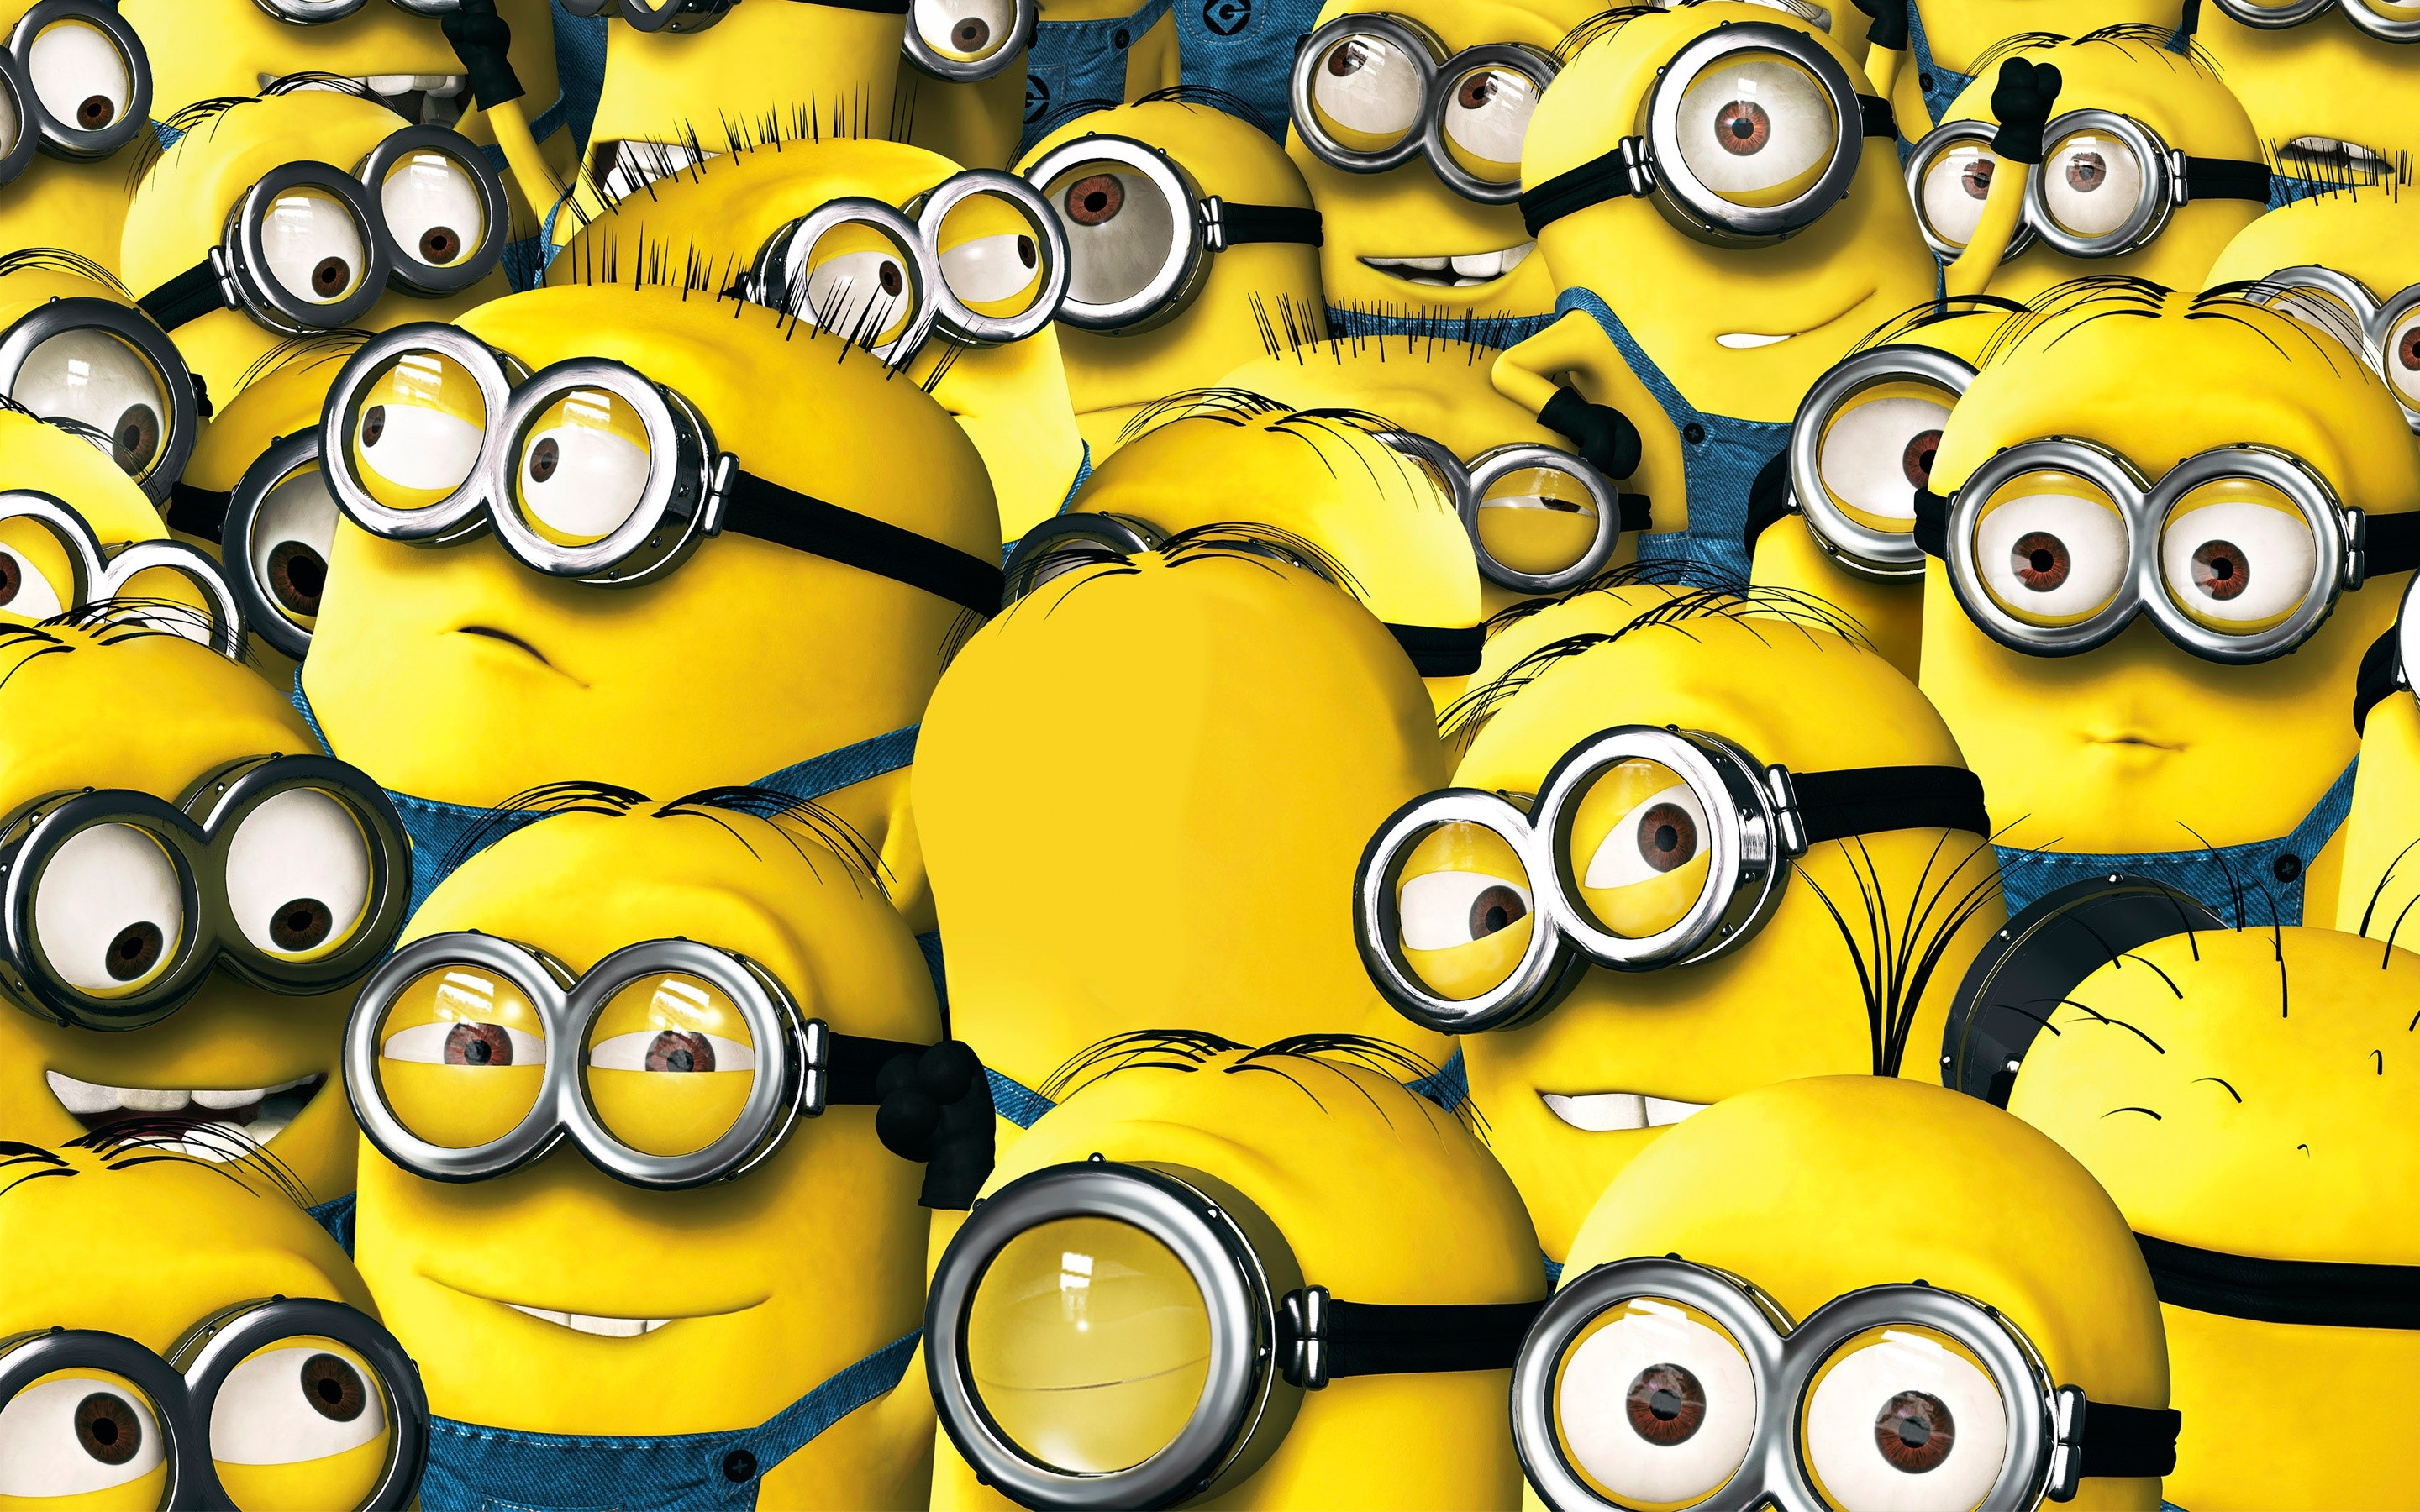 Wallpaper Minions of My favorite villain